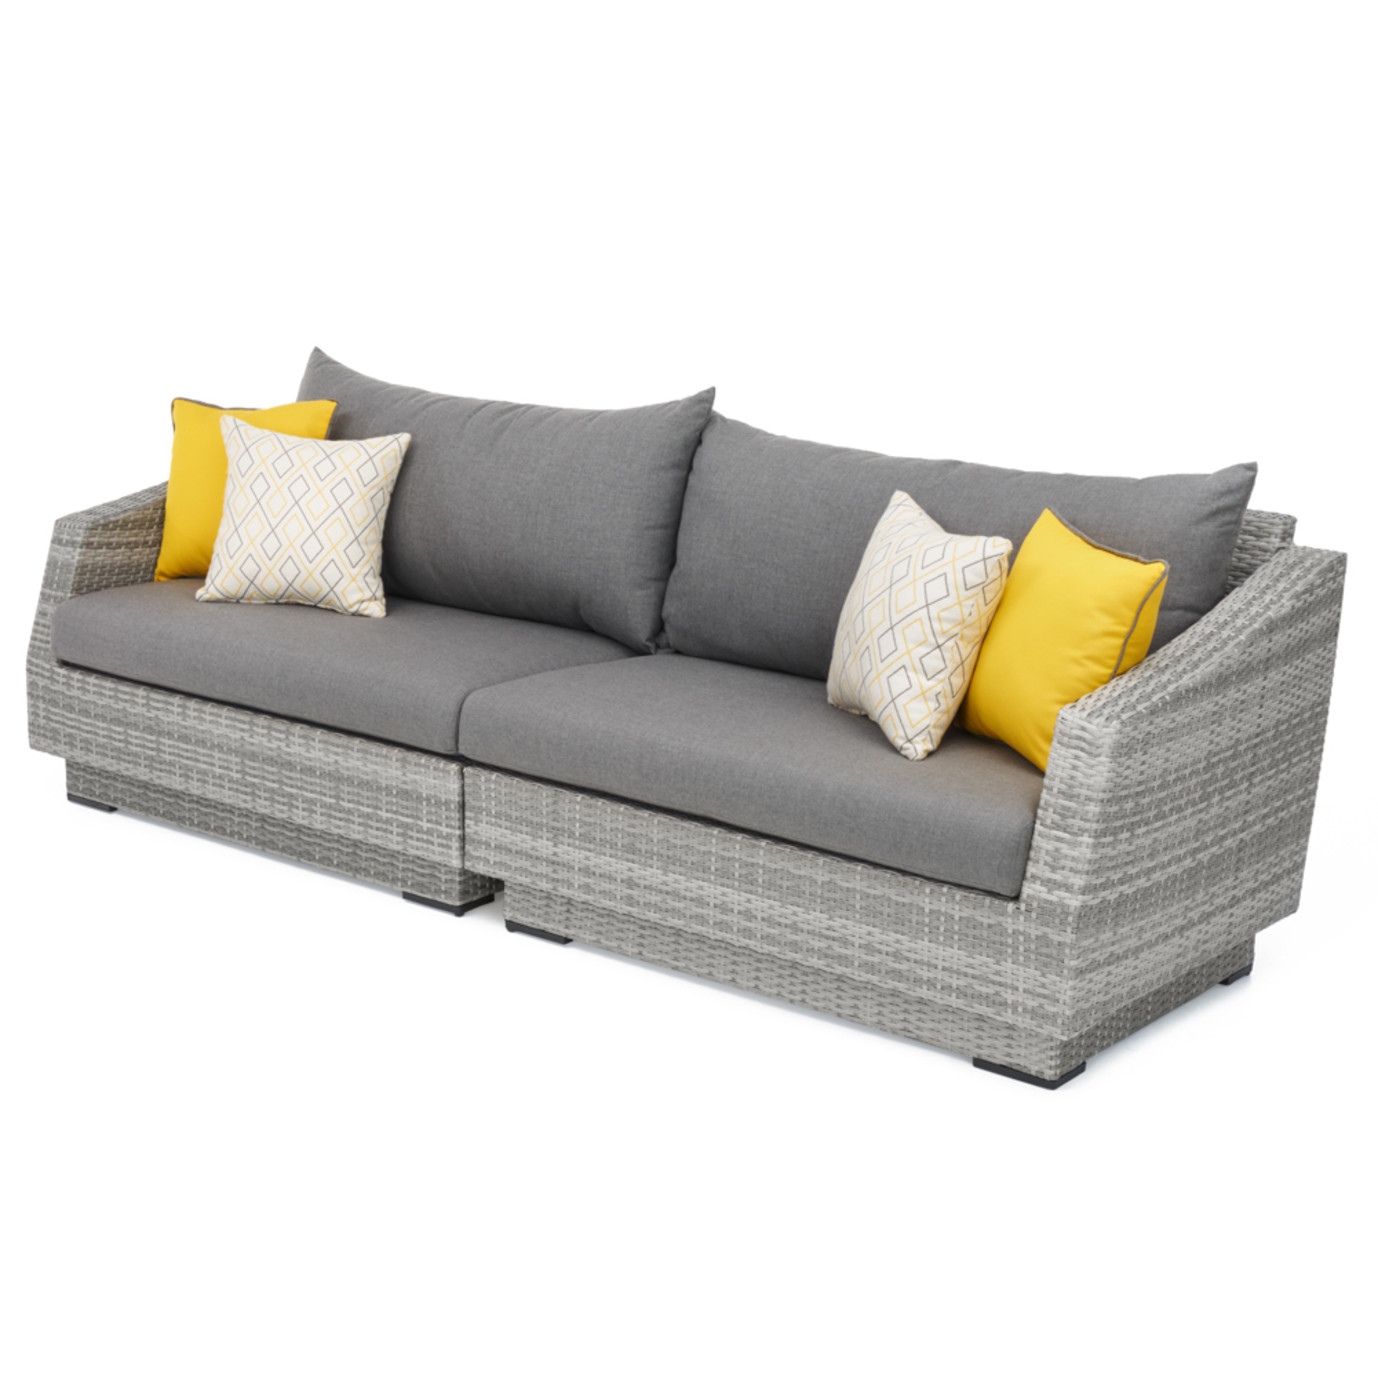 Cannes™ Sofa - Sunflower Yellow